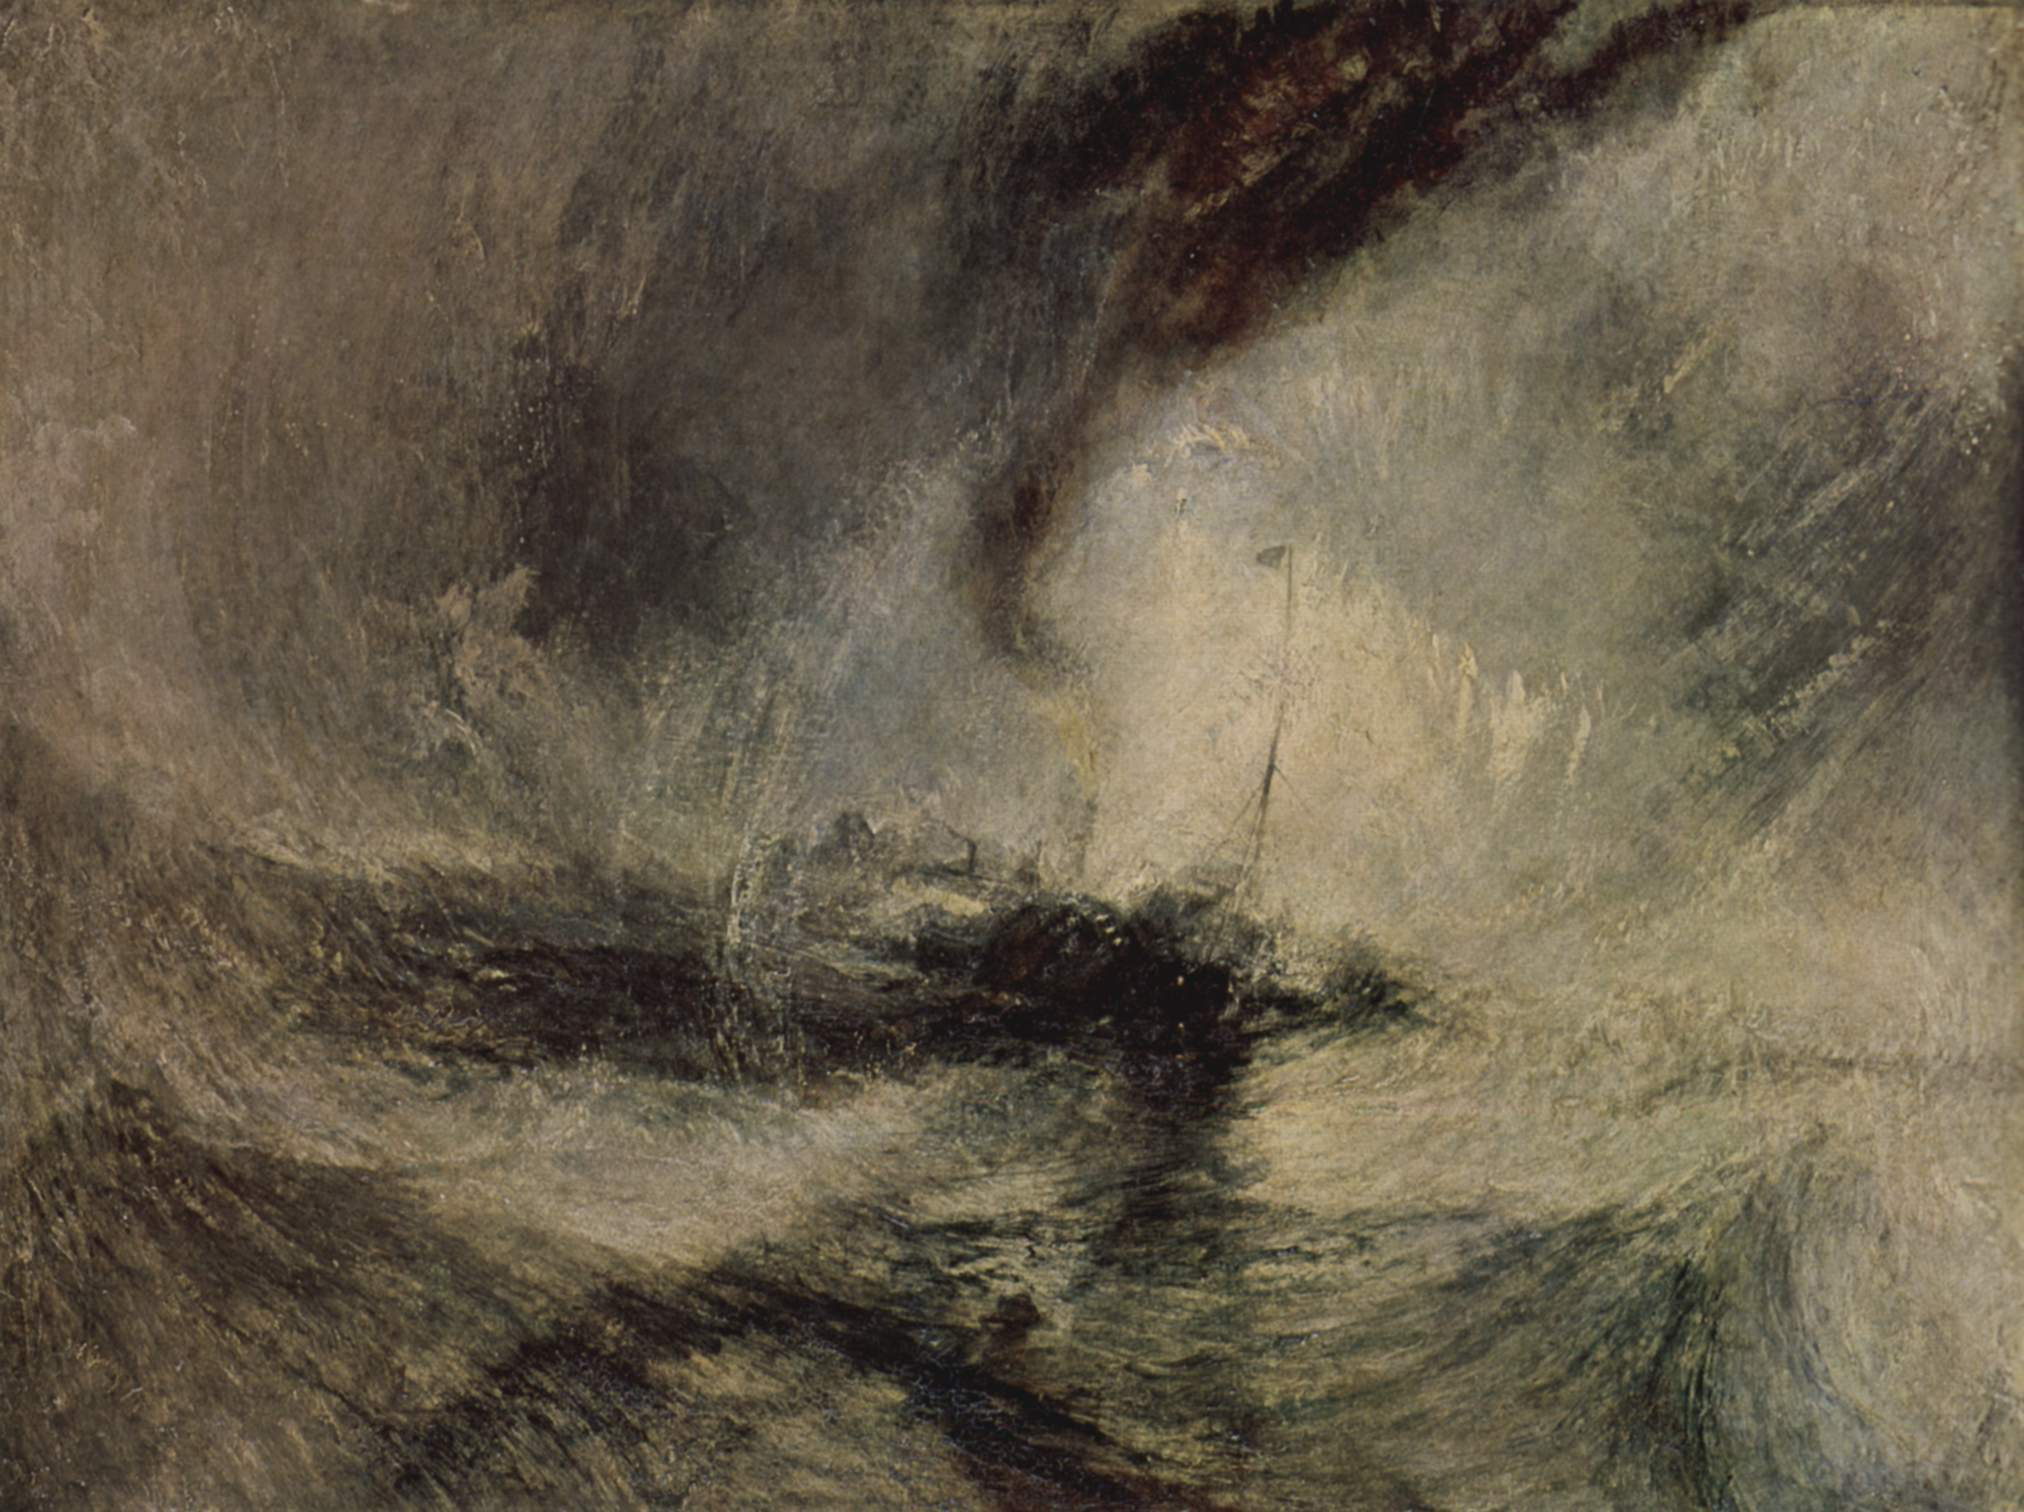 Snow storm—Steamboat off a Harbour's Mouth, J. M. W. Turner